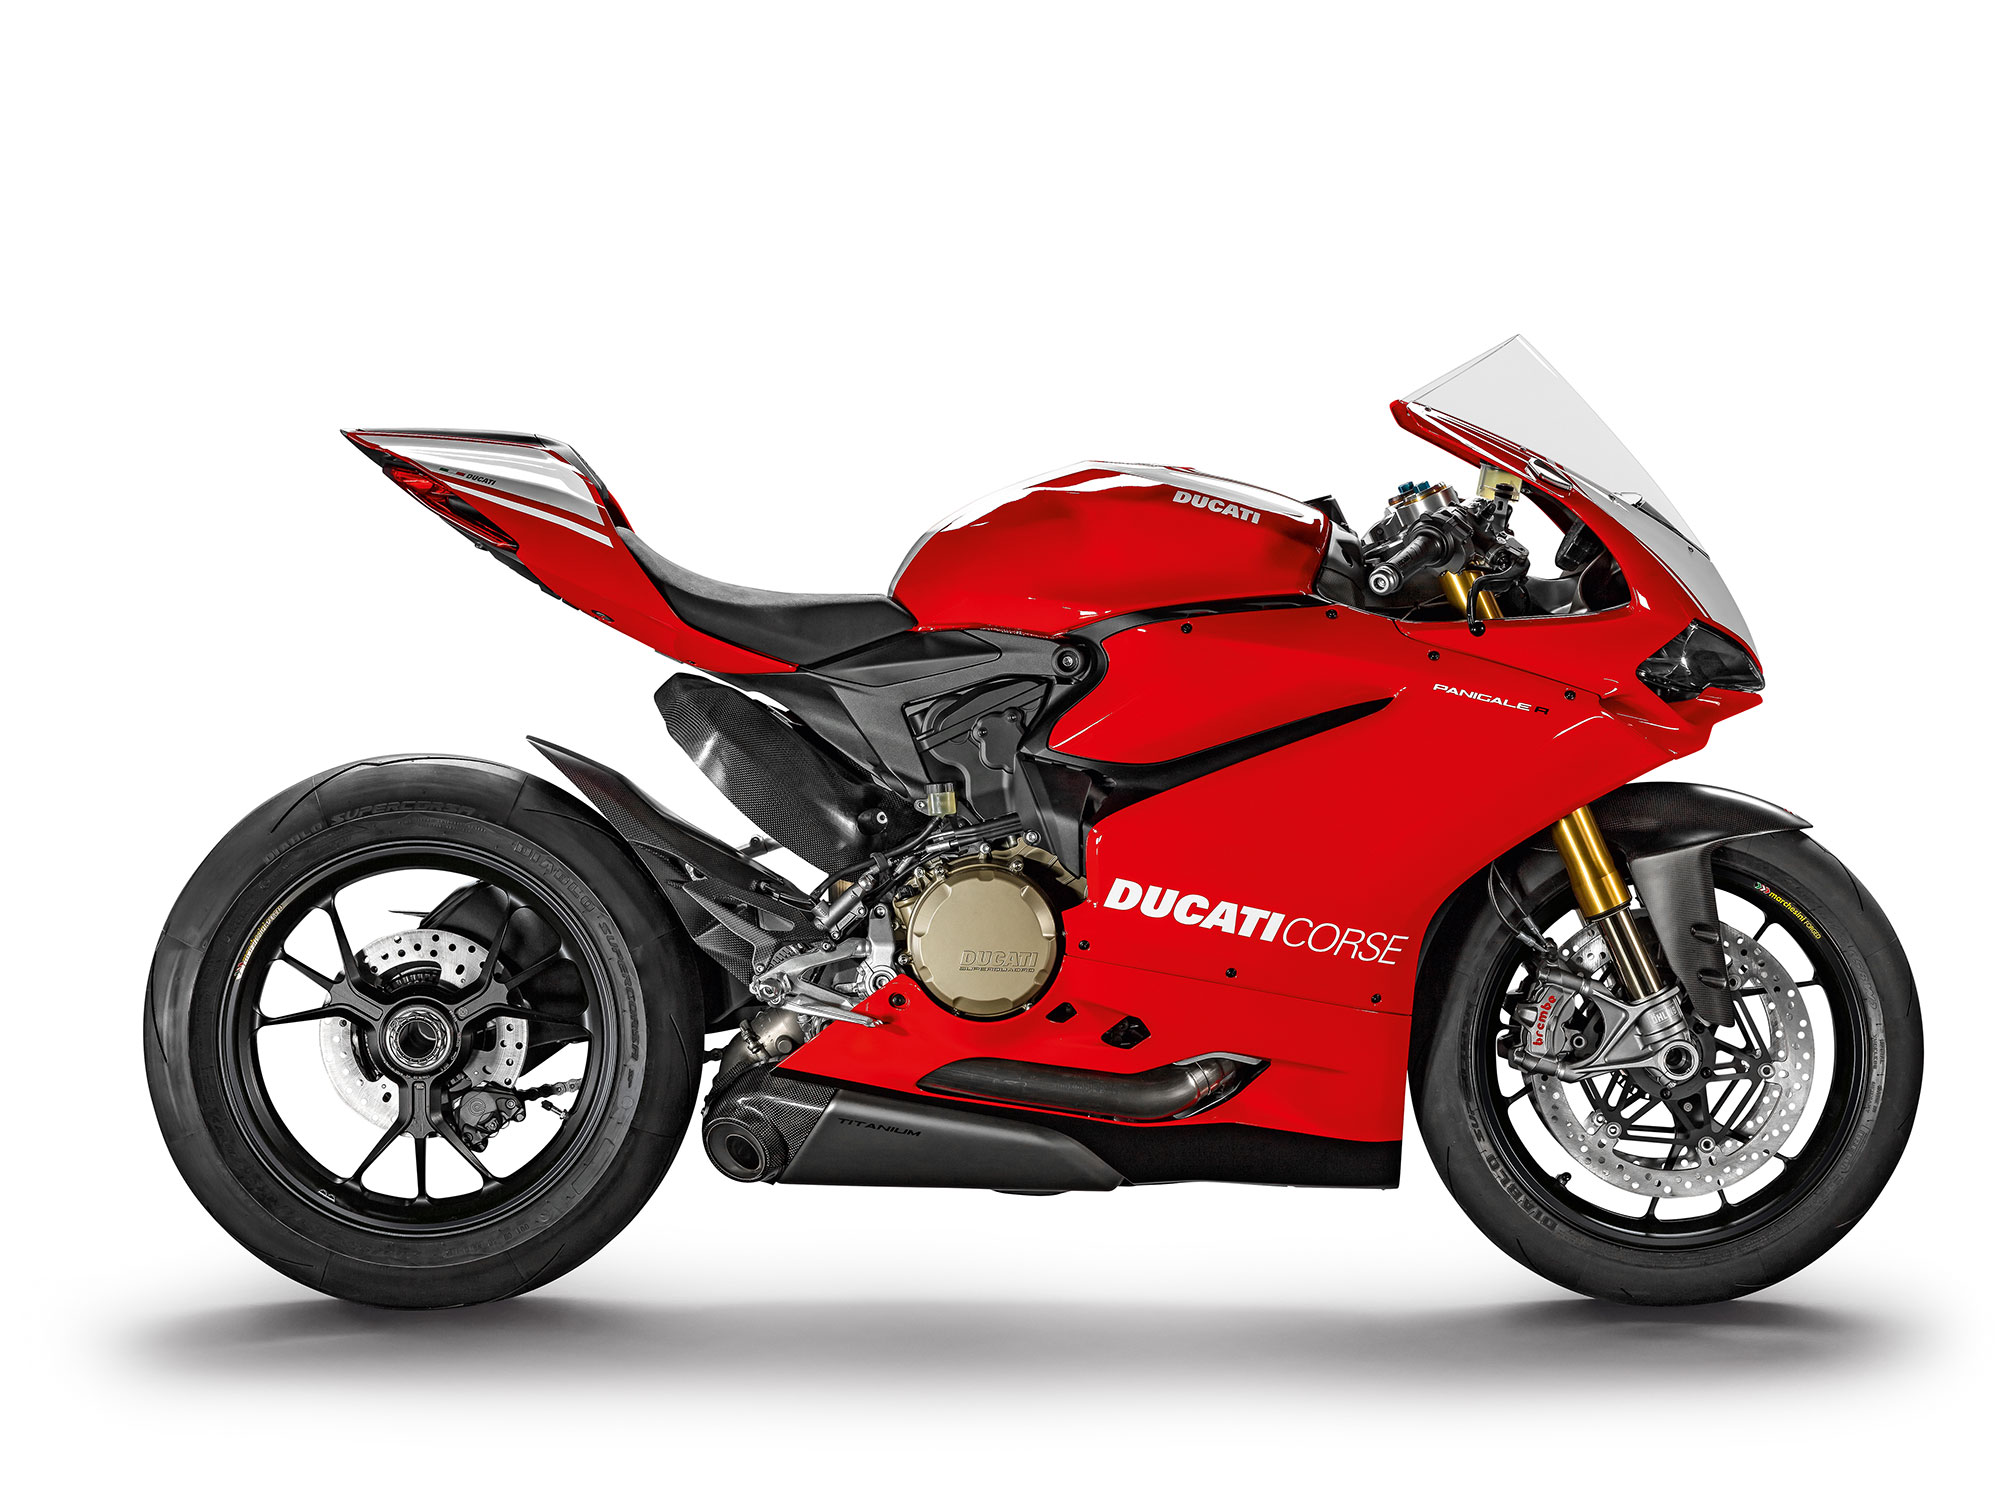 2016 ducati 1198 panigale r review